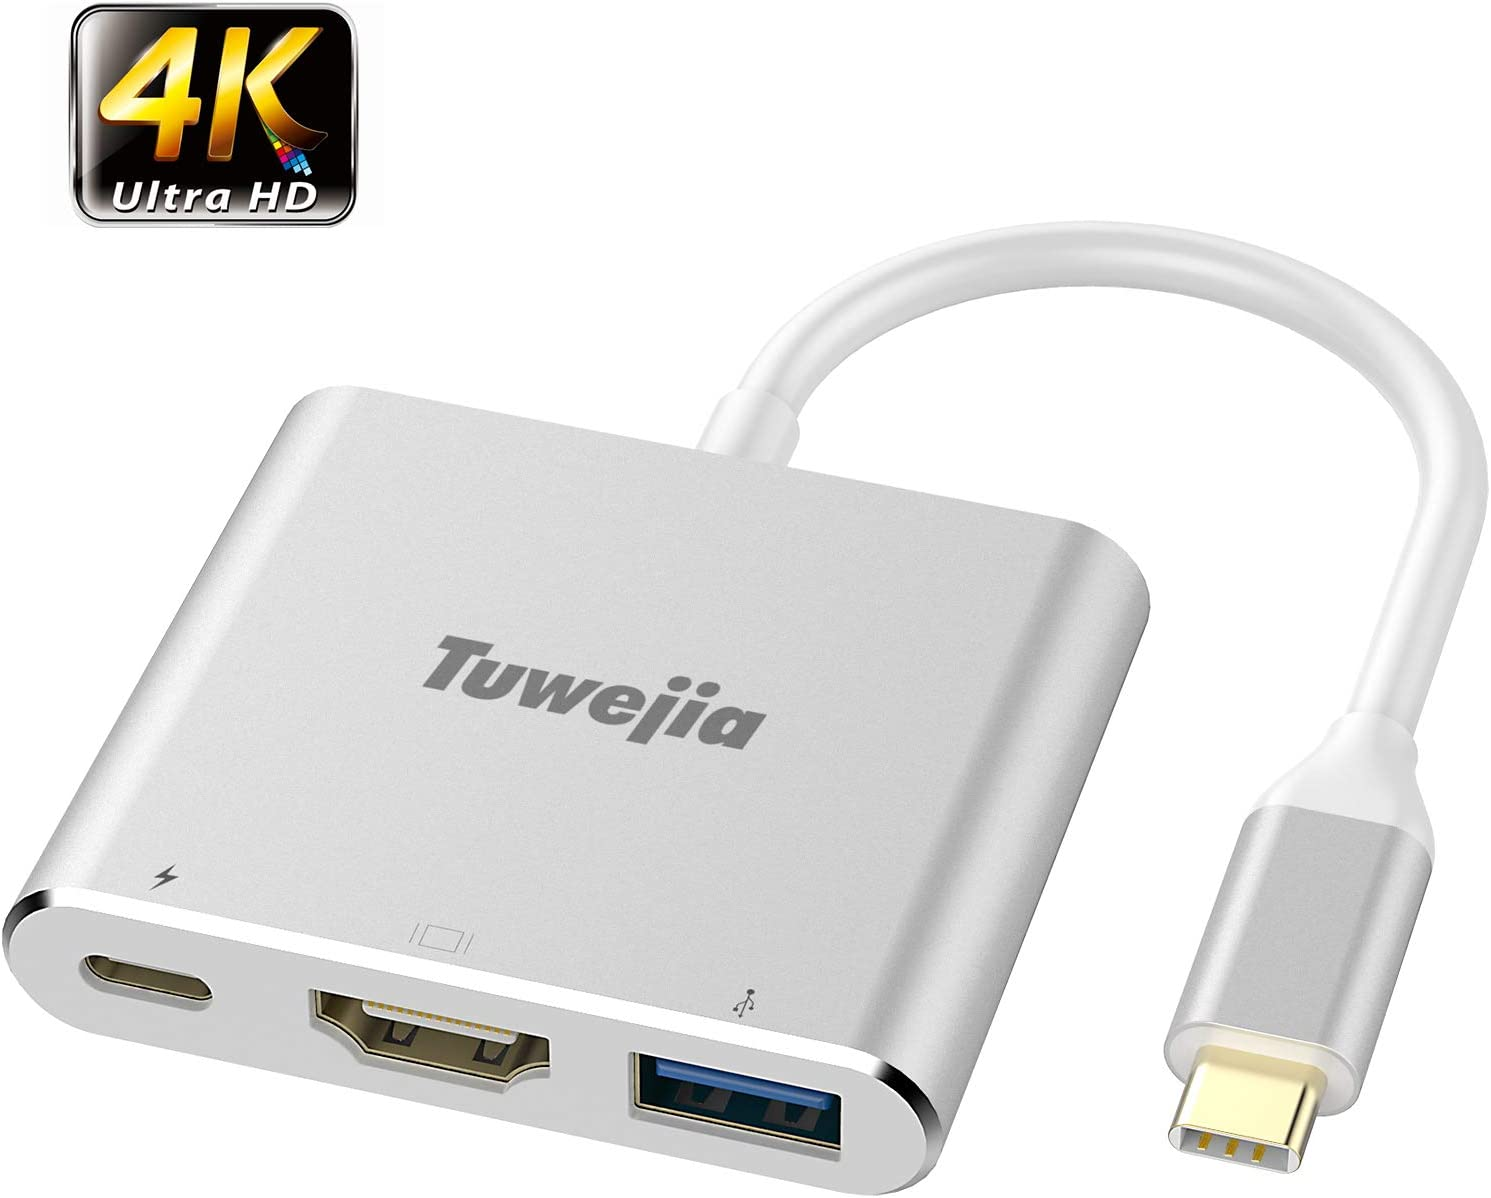 USB C to HDMI Multiport Adapter Tuwejia USB 3.1 Gen 1 Thumderbolt 3 to HDMI 4K Video Converter/USB 3.0 hub Port PD Quick Charging Port with Large Projection for 2015/16/17/18 MacBook/MacBook Pro/Chr